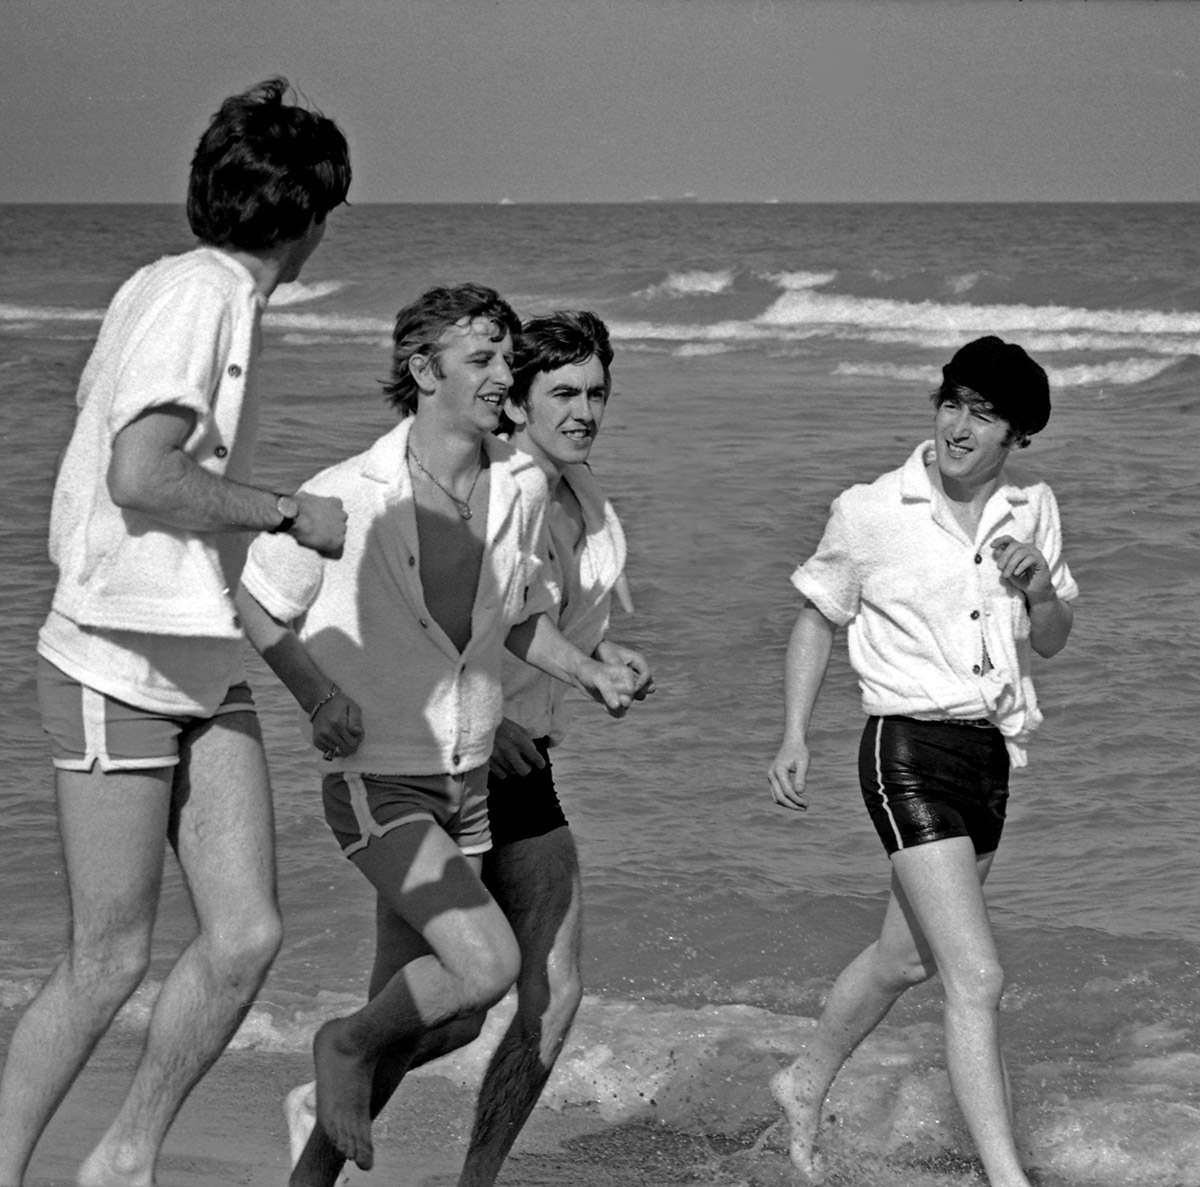 The Beatles running on the beach in Miami, Florida, February 1964.